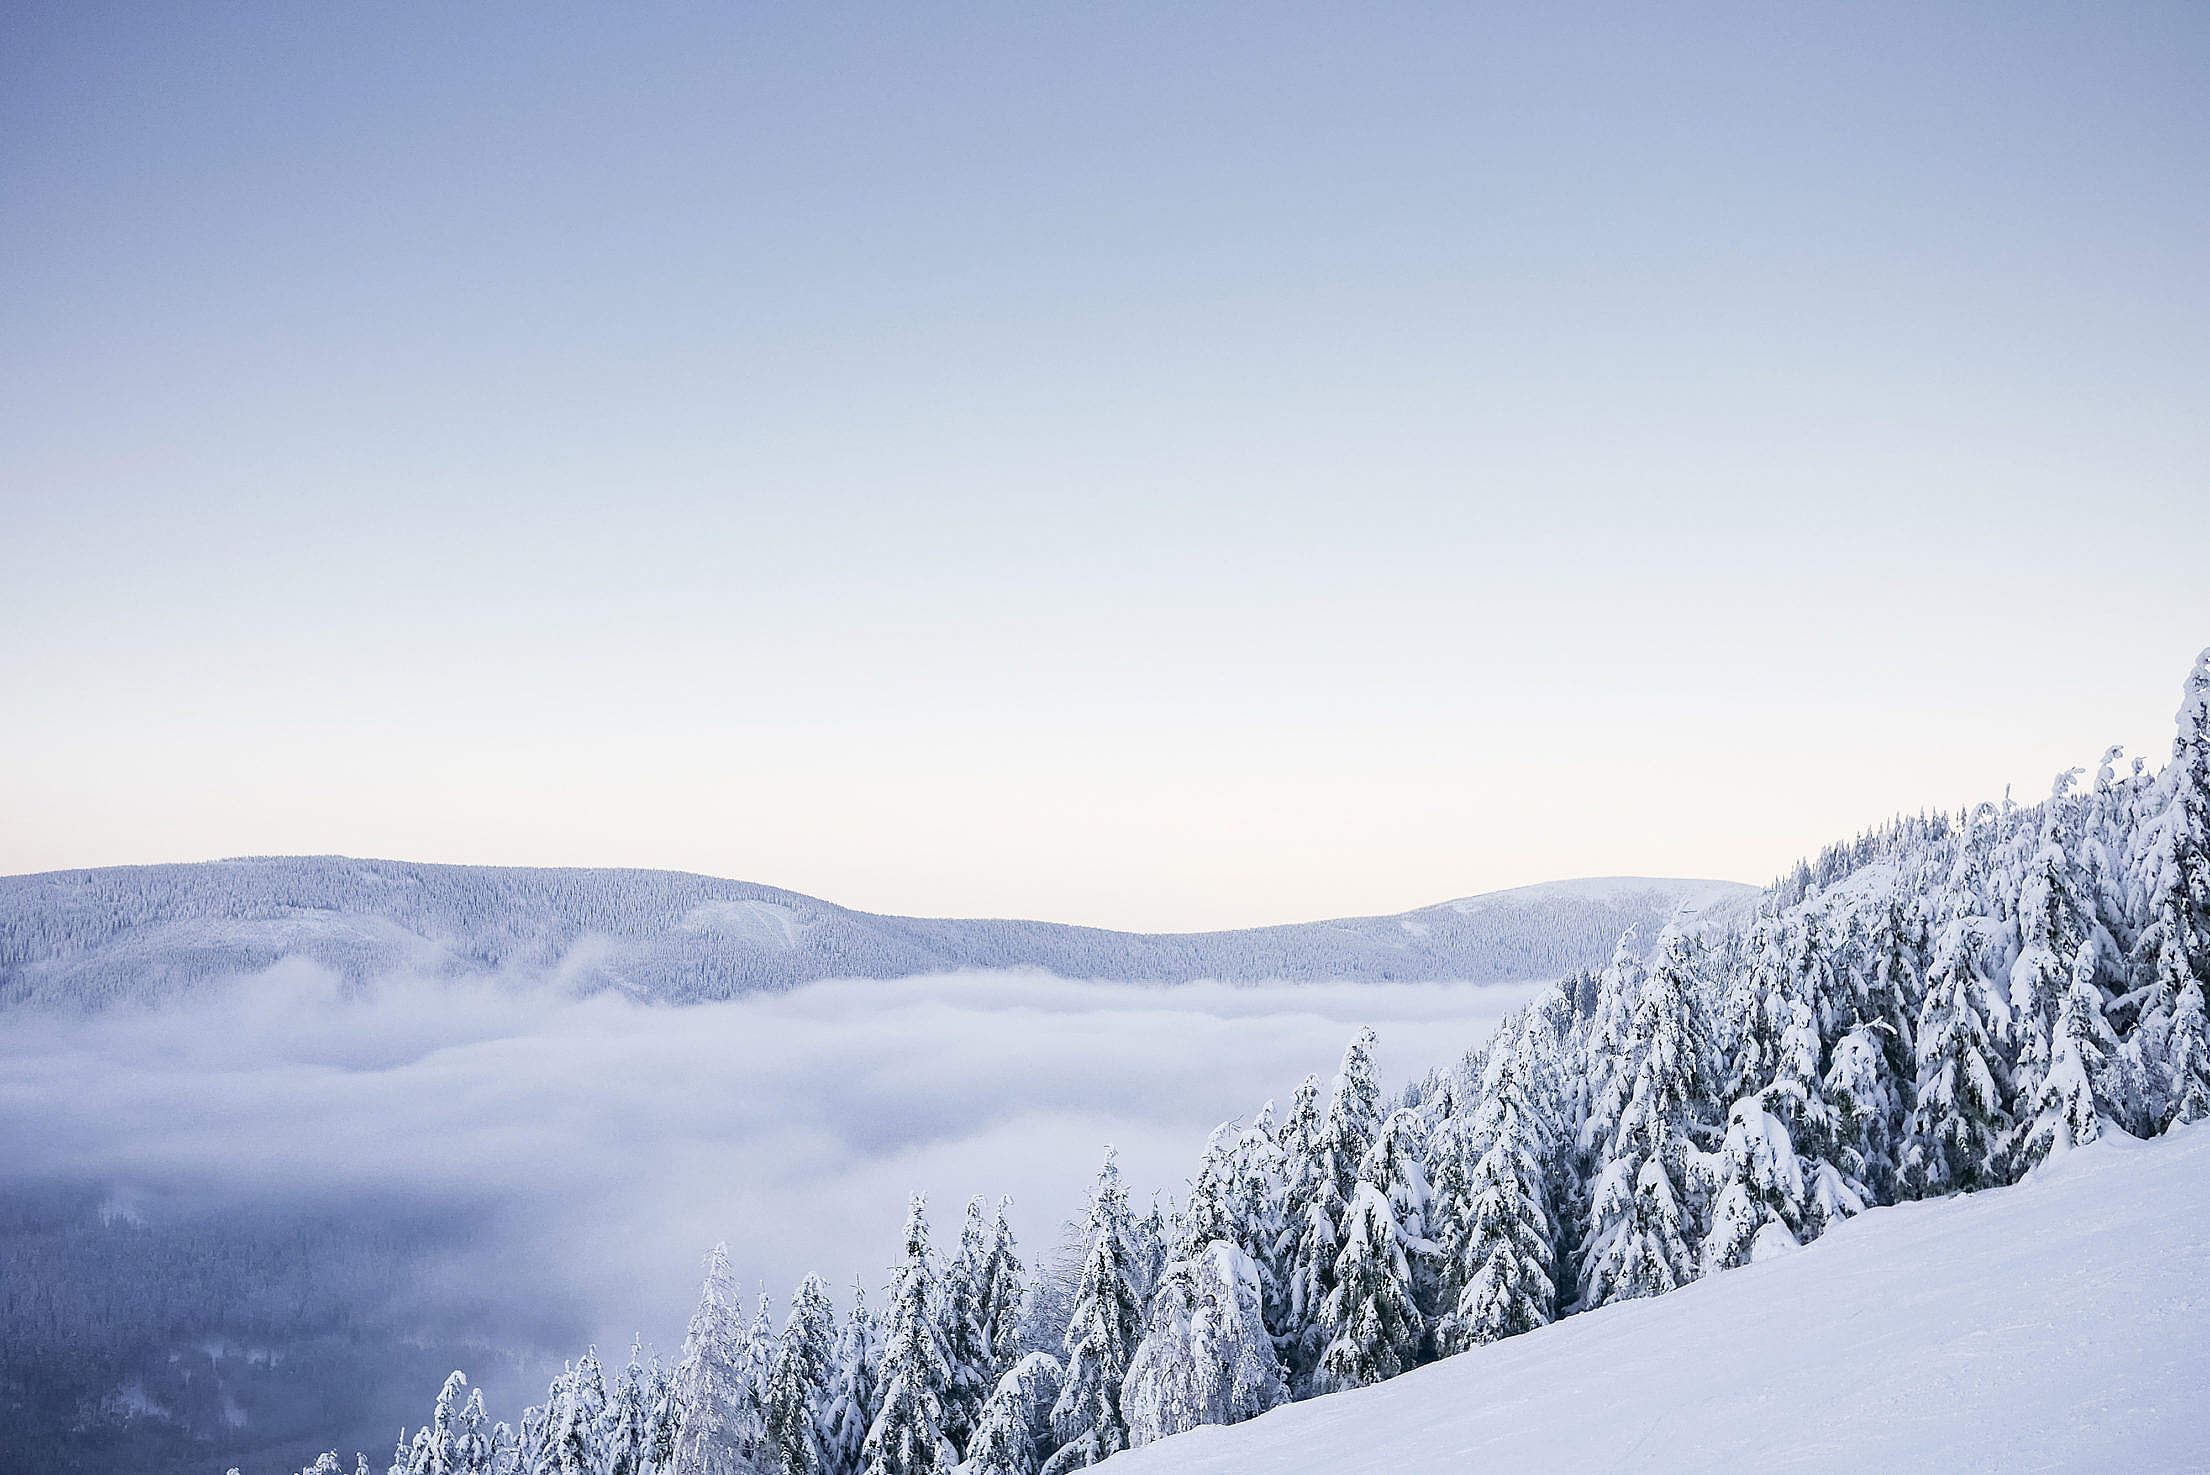 Beautiful Mountains with Snow Cloudless Panorama Free Stock Photo